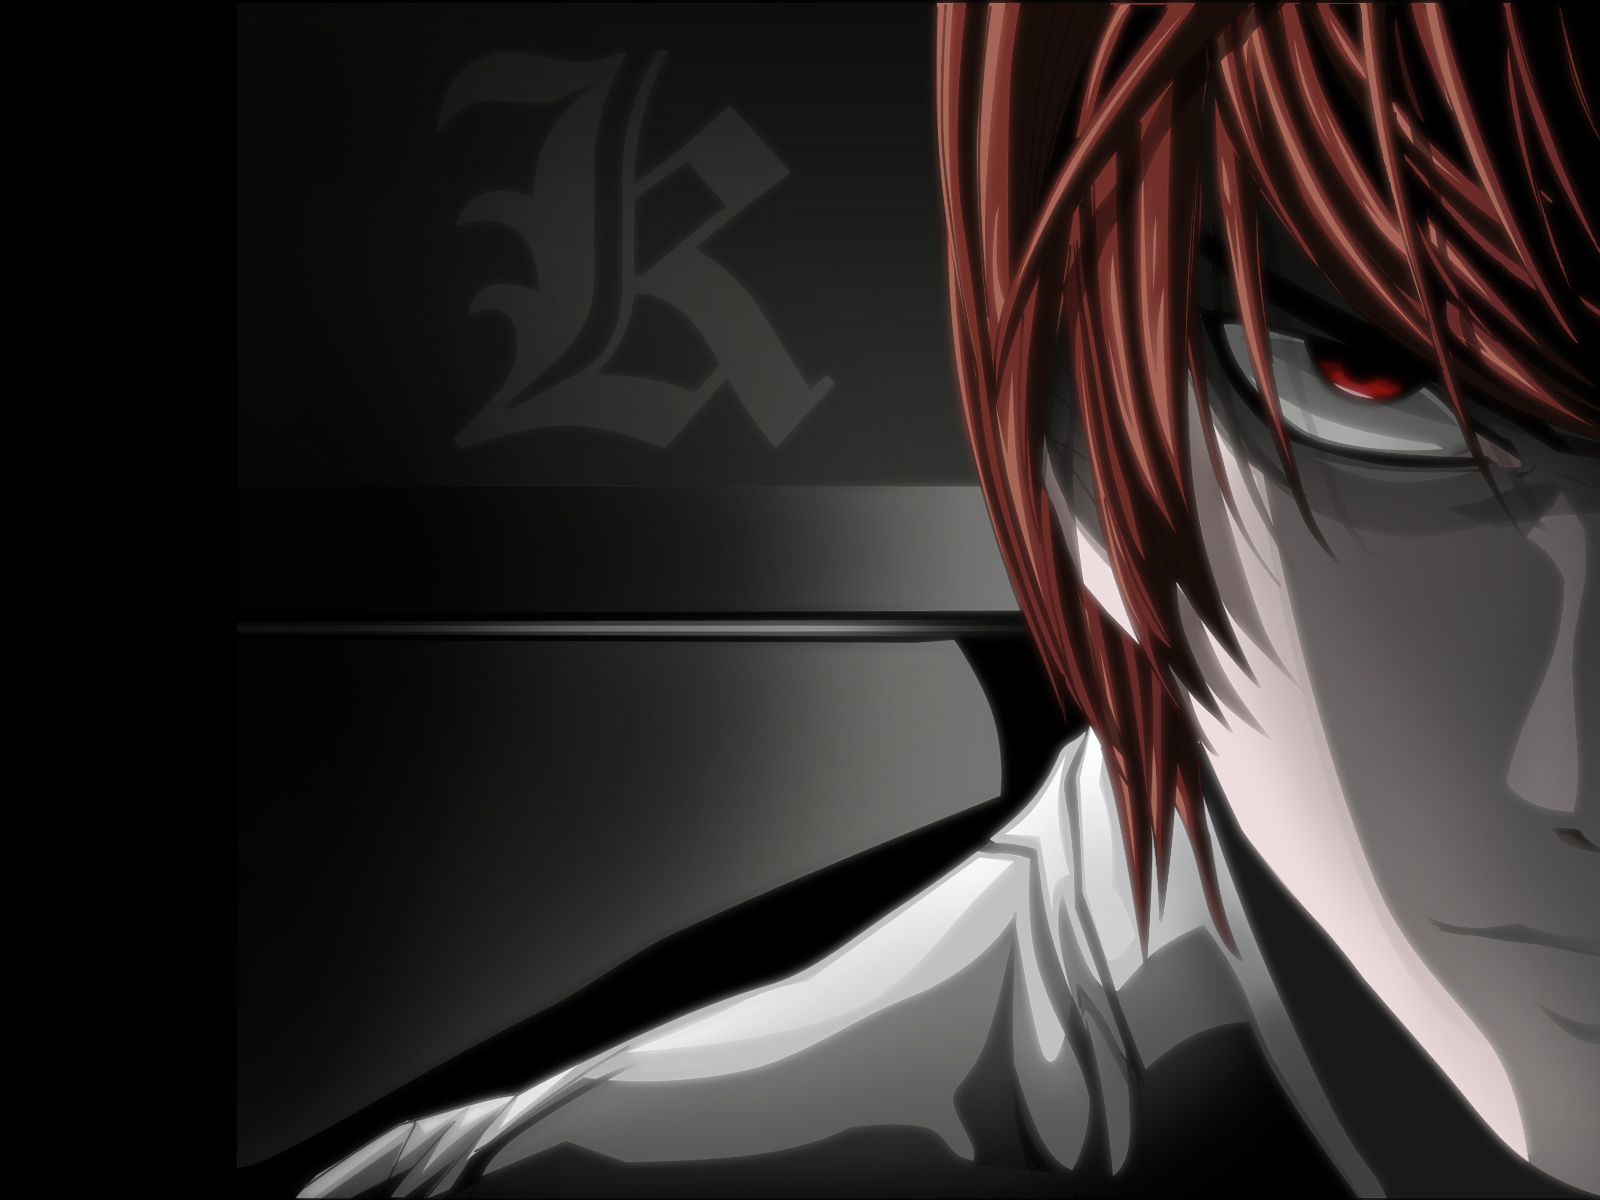 Light Yagami Close Up - Death Note Wallpaper